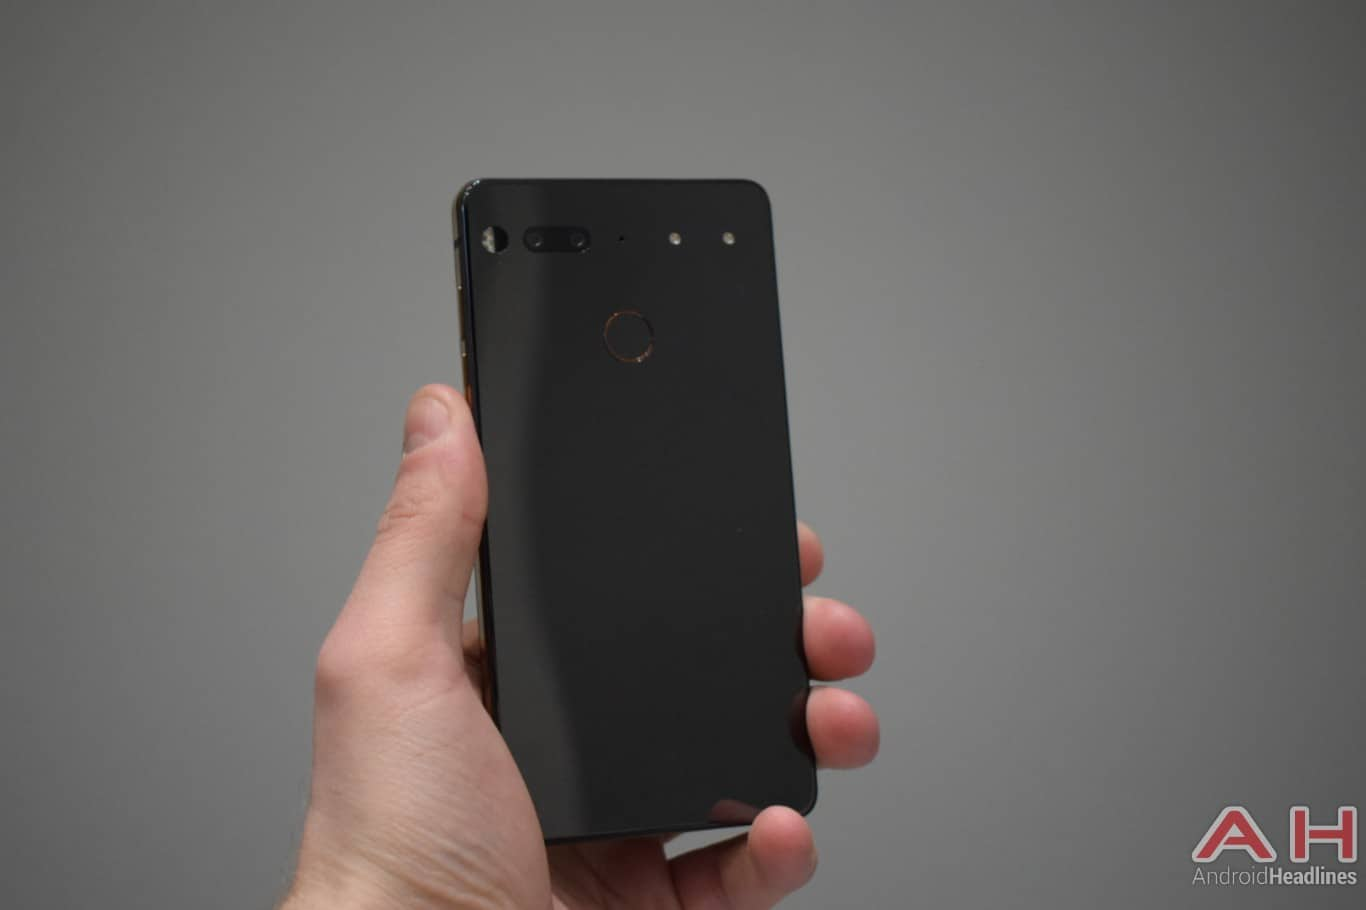 AH Essential PH 1 hands on MWC 2018 2